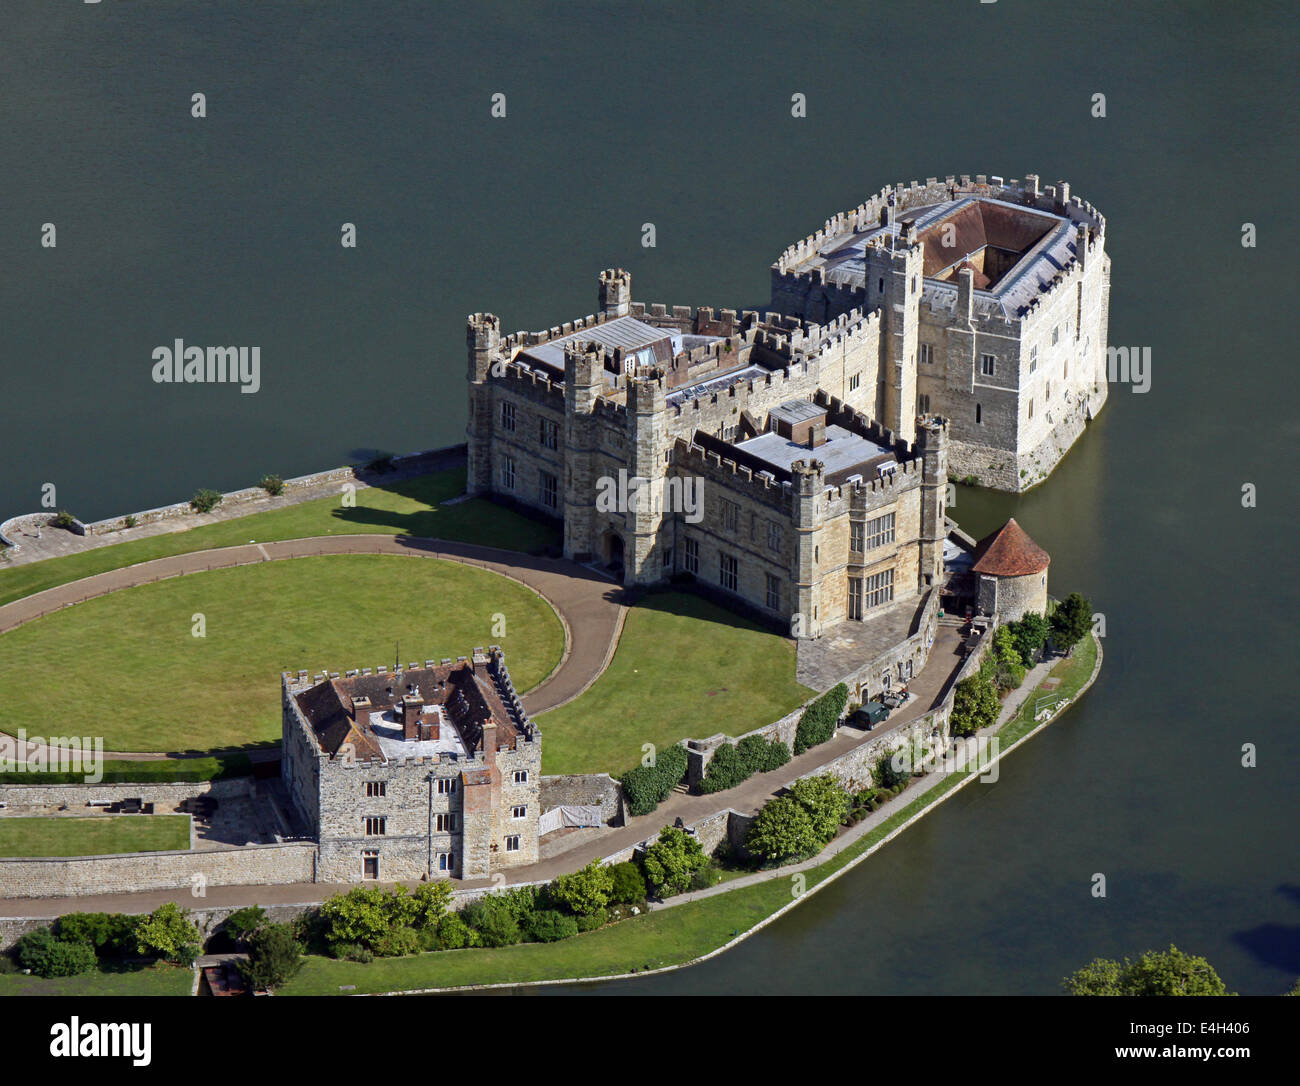 aerial view of Leeds Castle in Kent - Stock Image